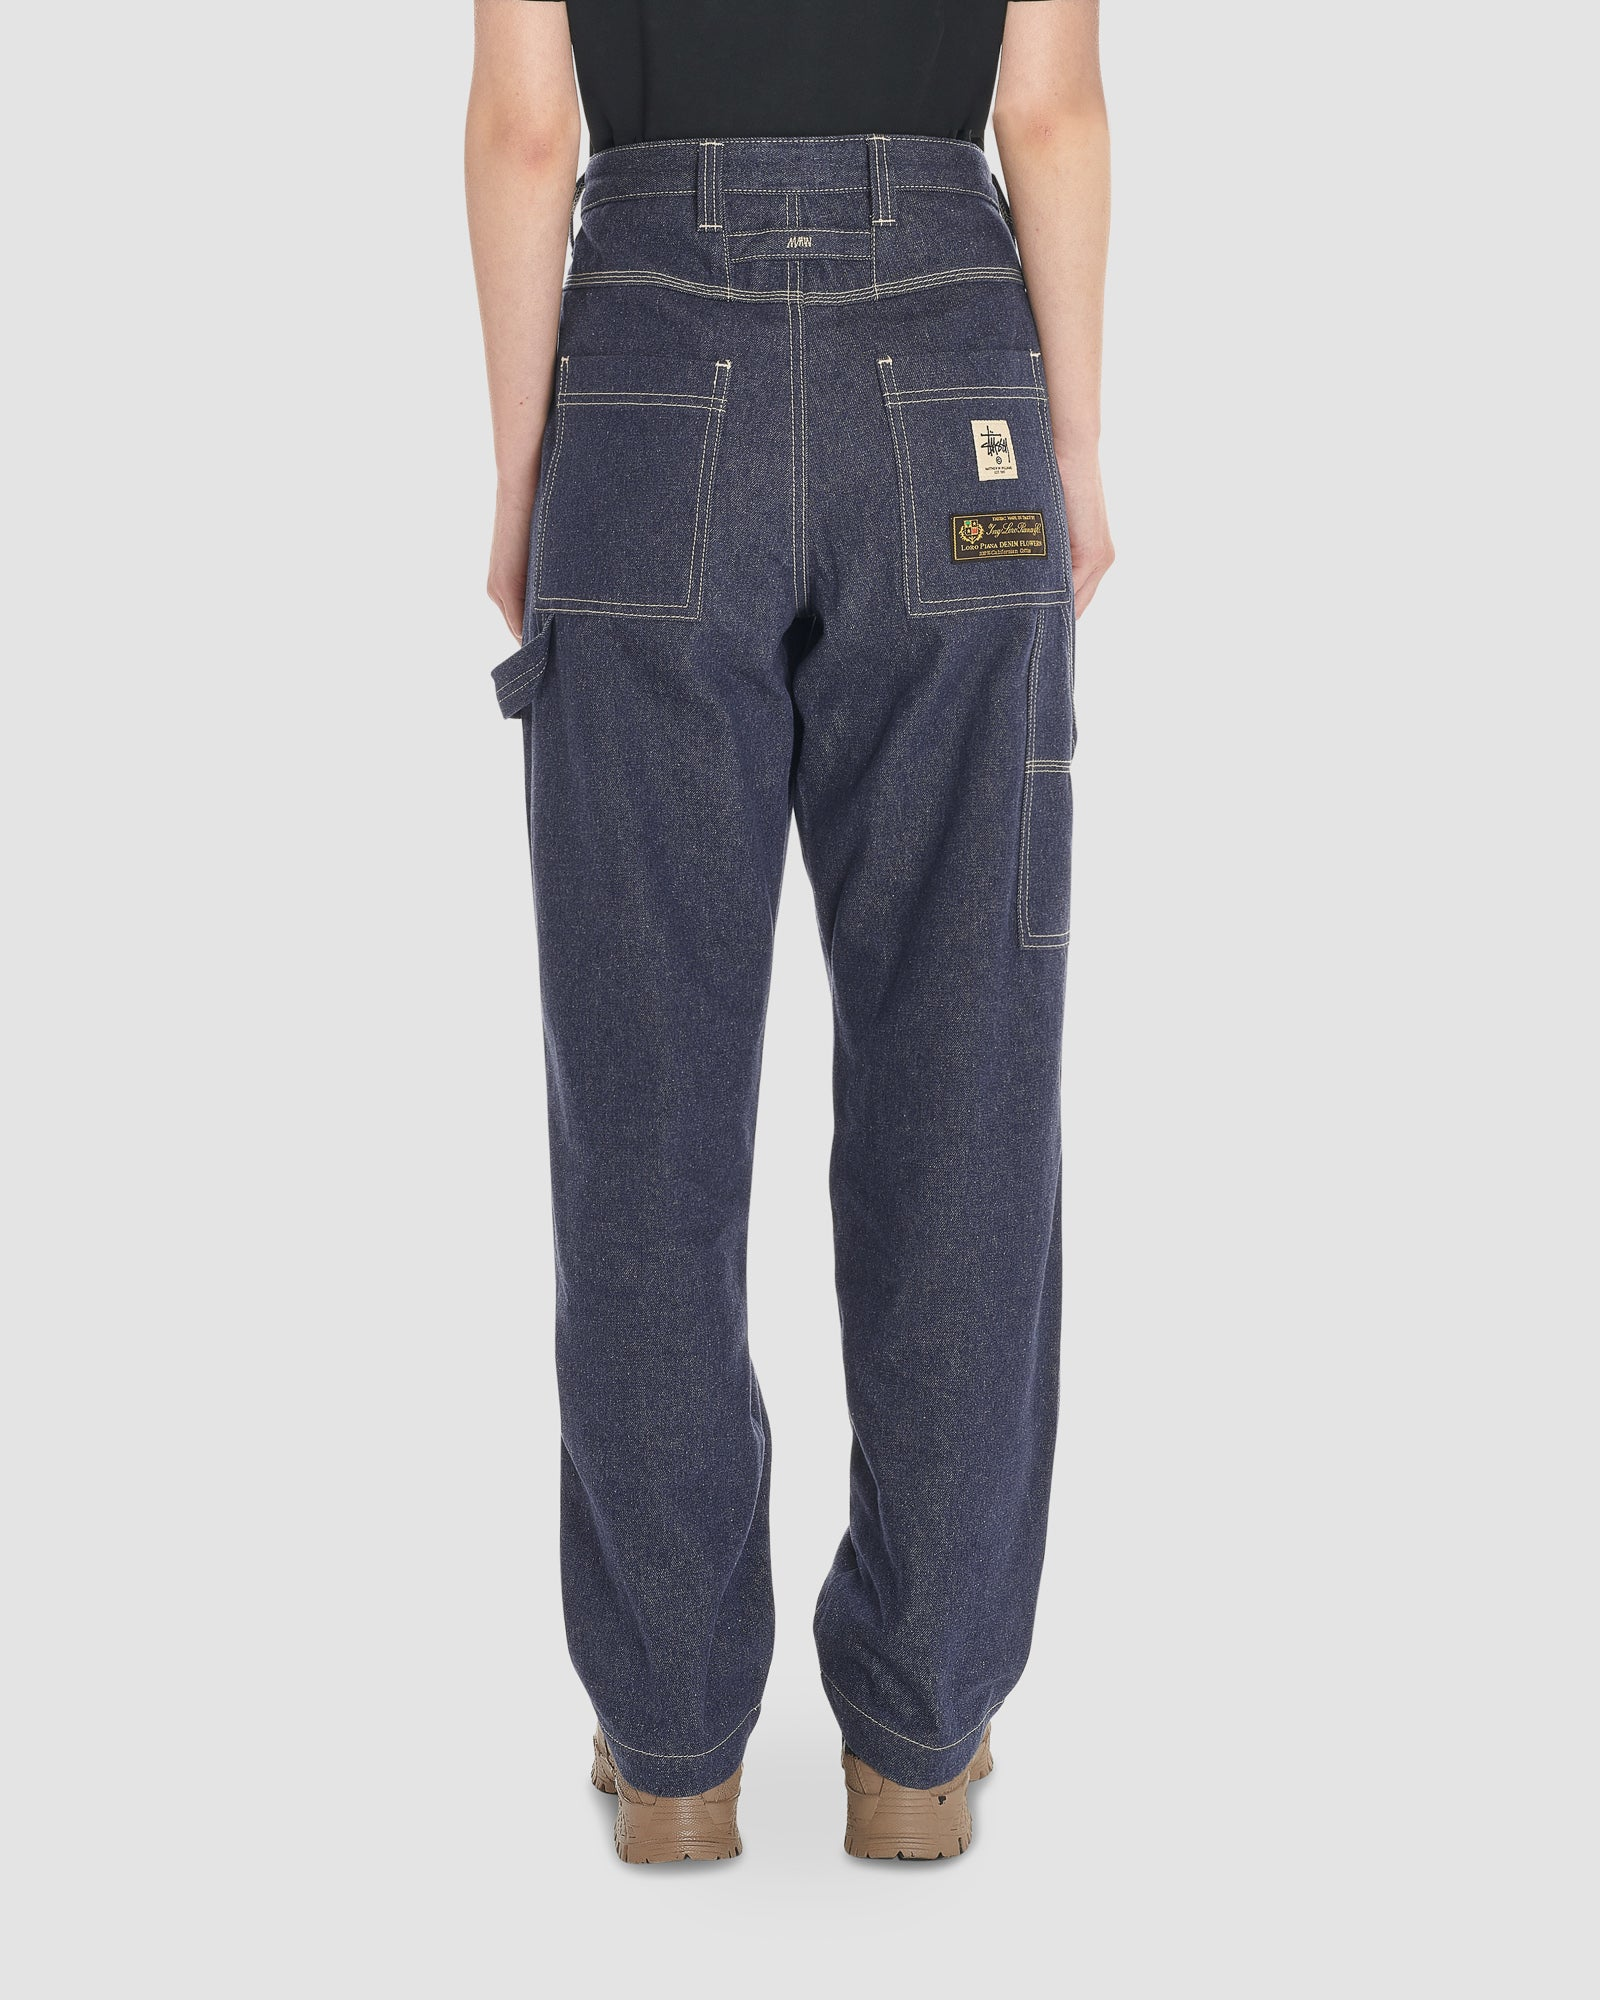 STÜSSY CARPENTER PANT